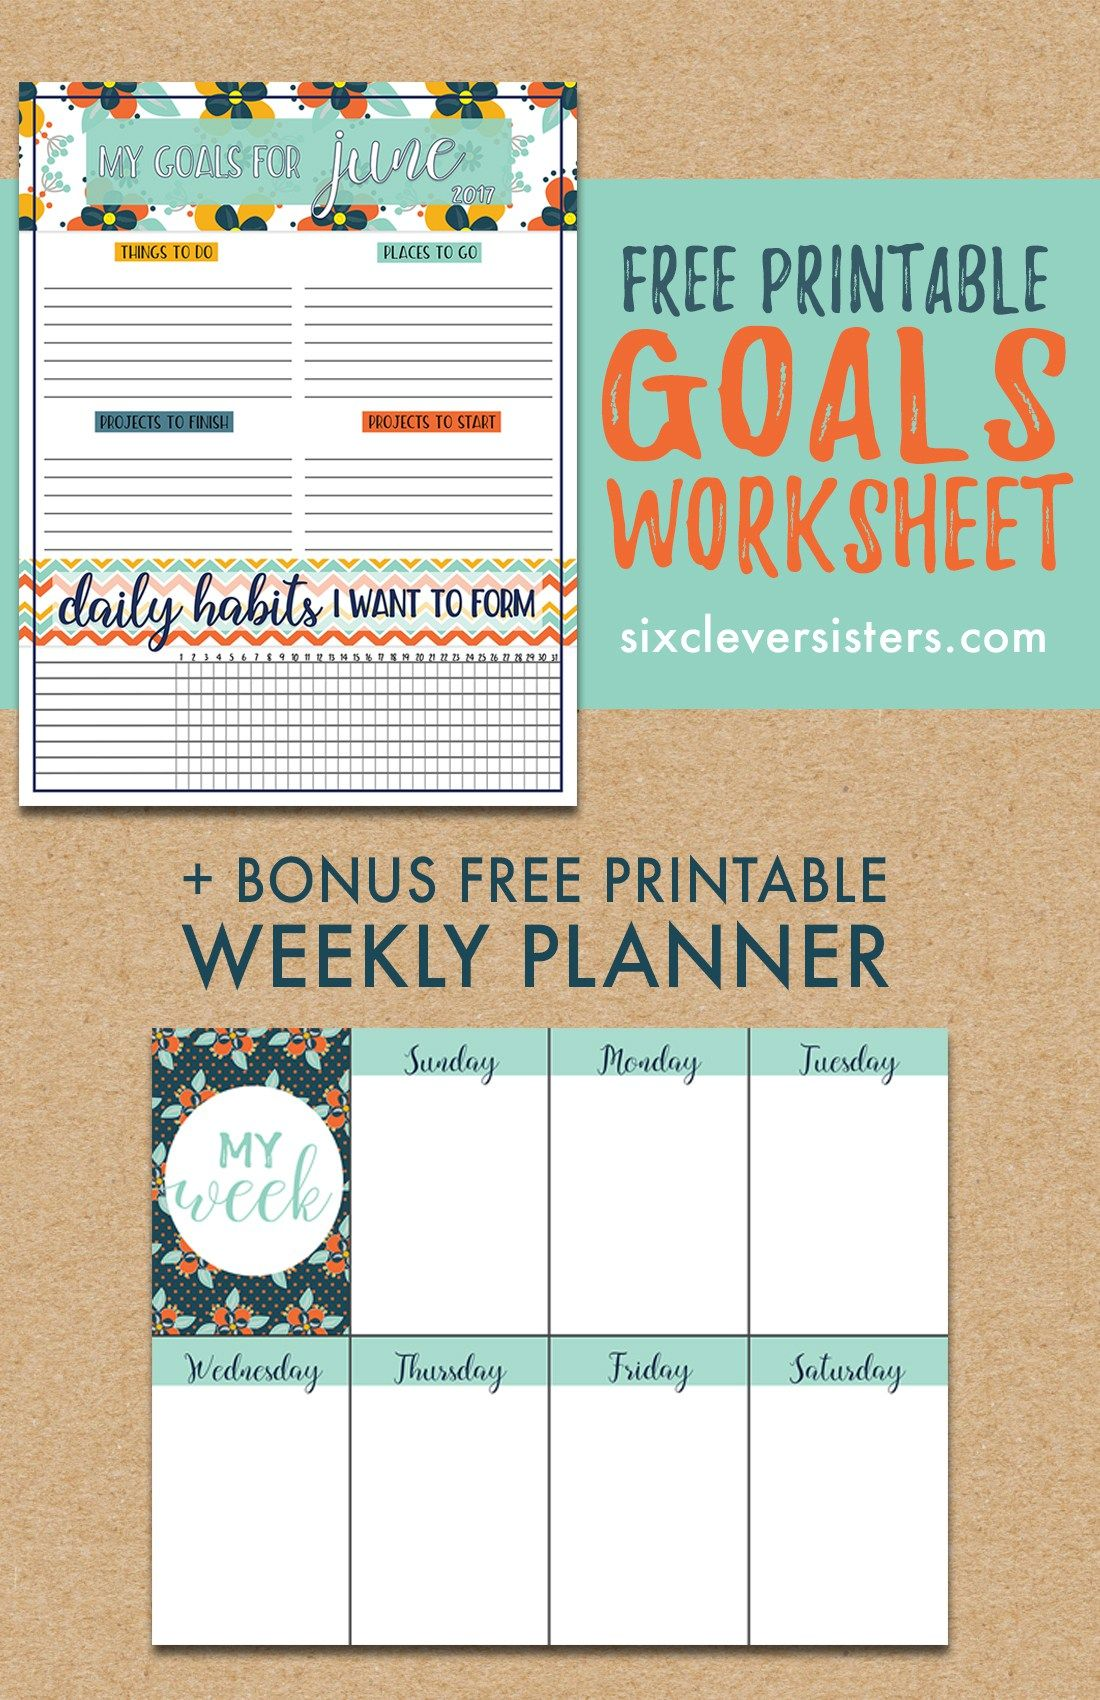 Free Download Goals Worksheet Printable